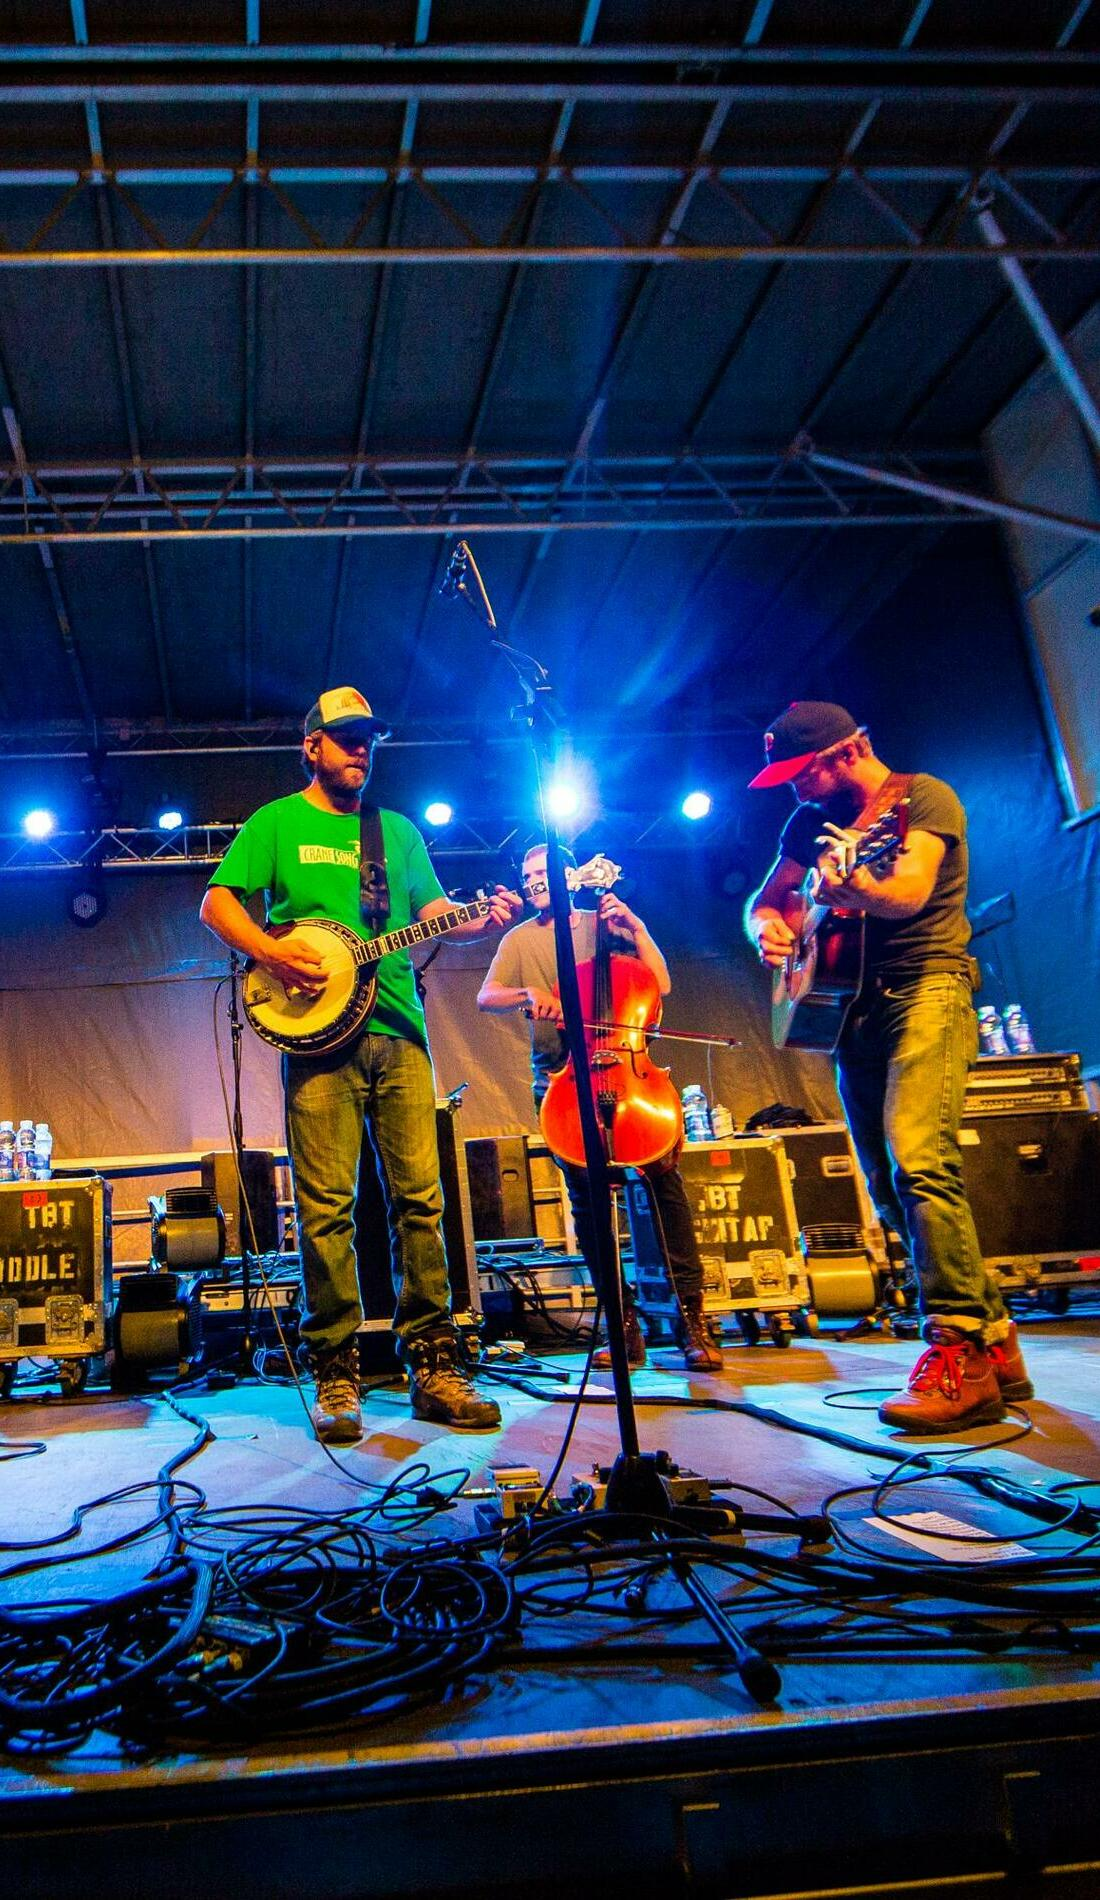 A Trampled by Turtles live event